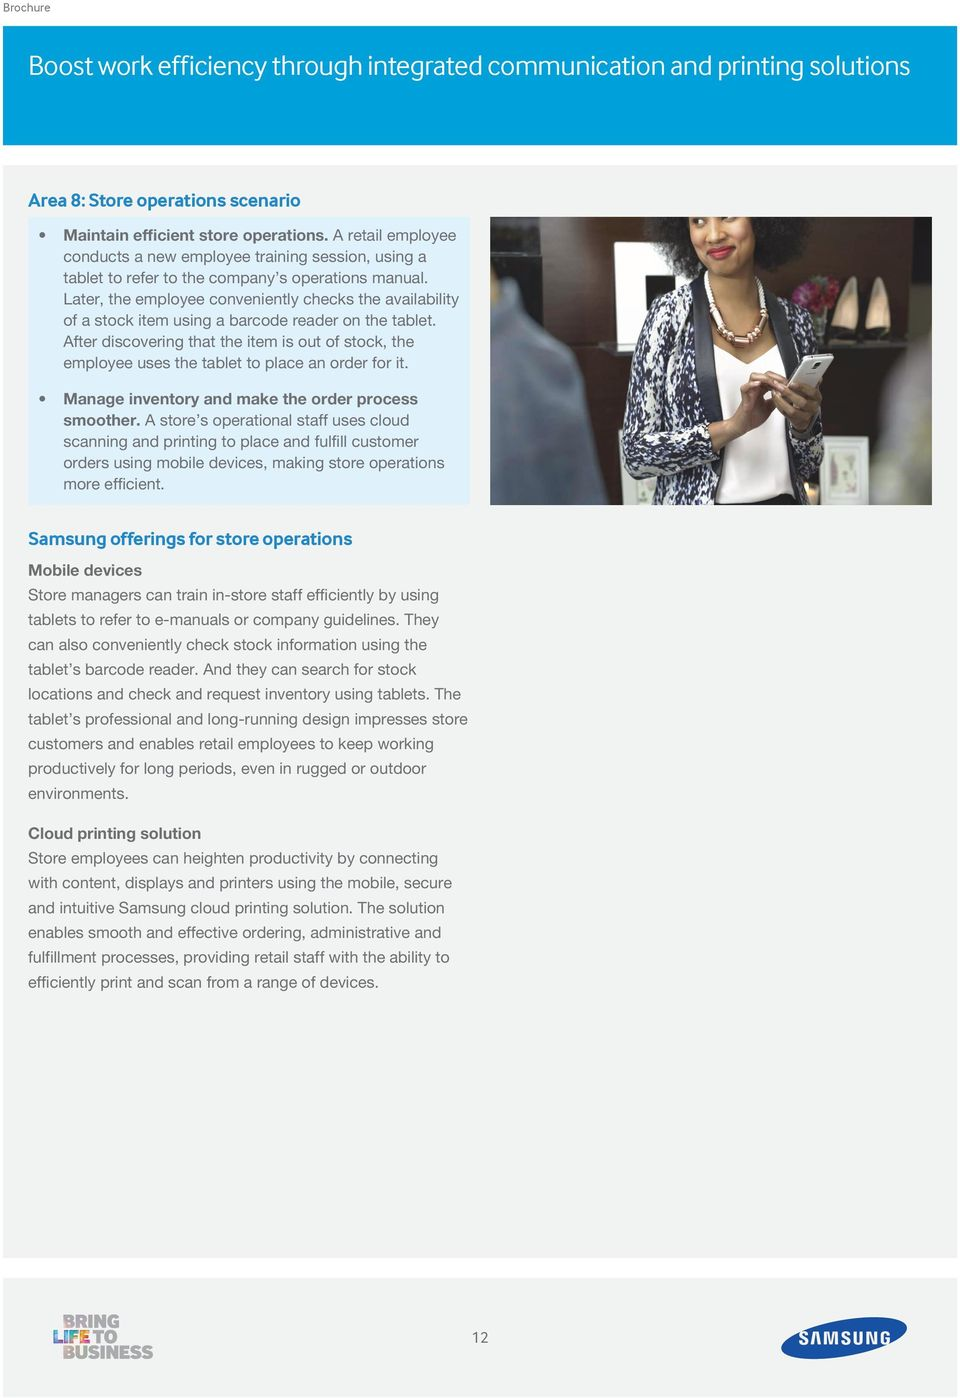 Brochure  Samsung in Retail  Personalized and efficient